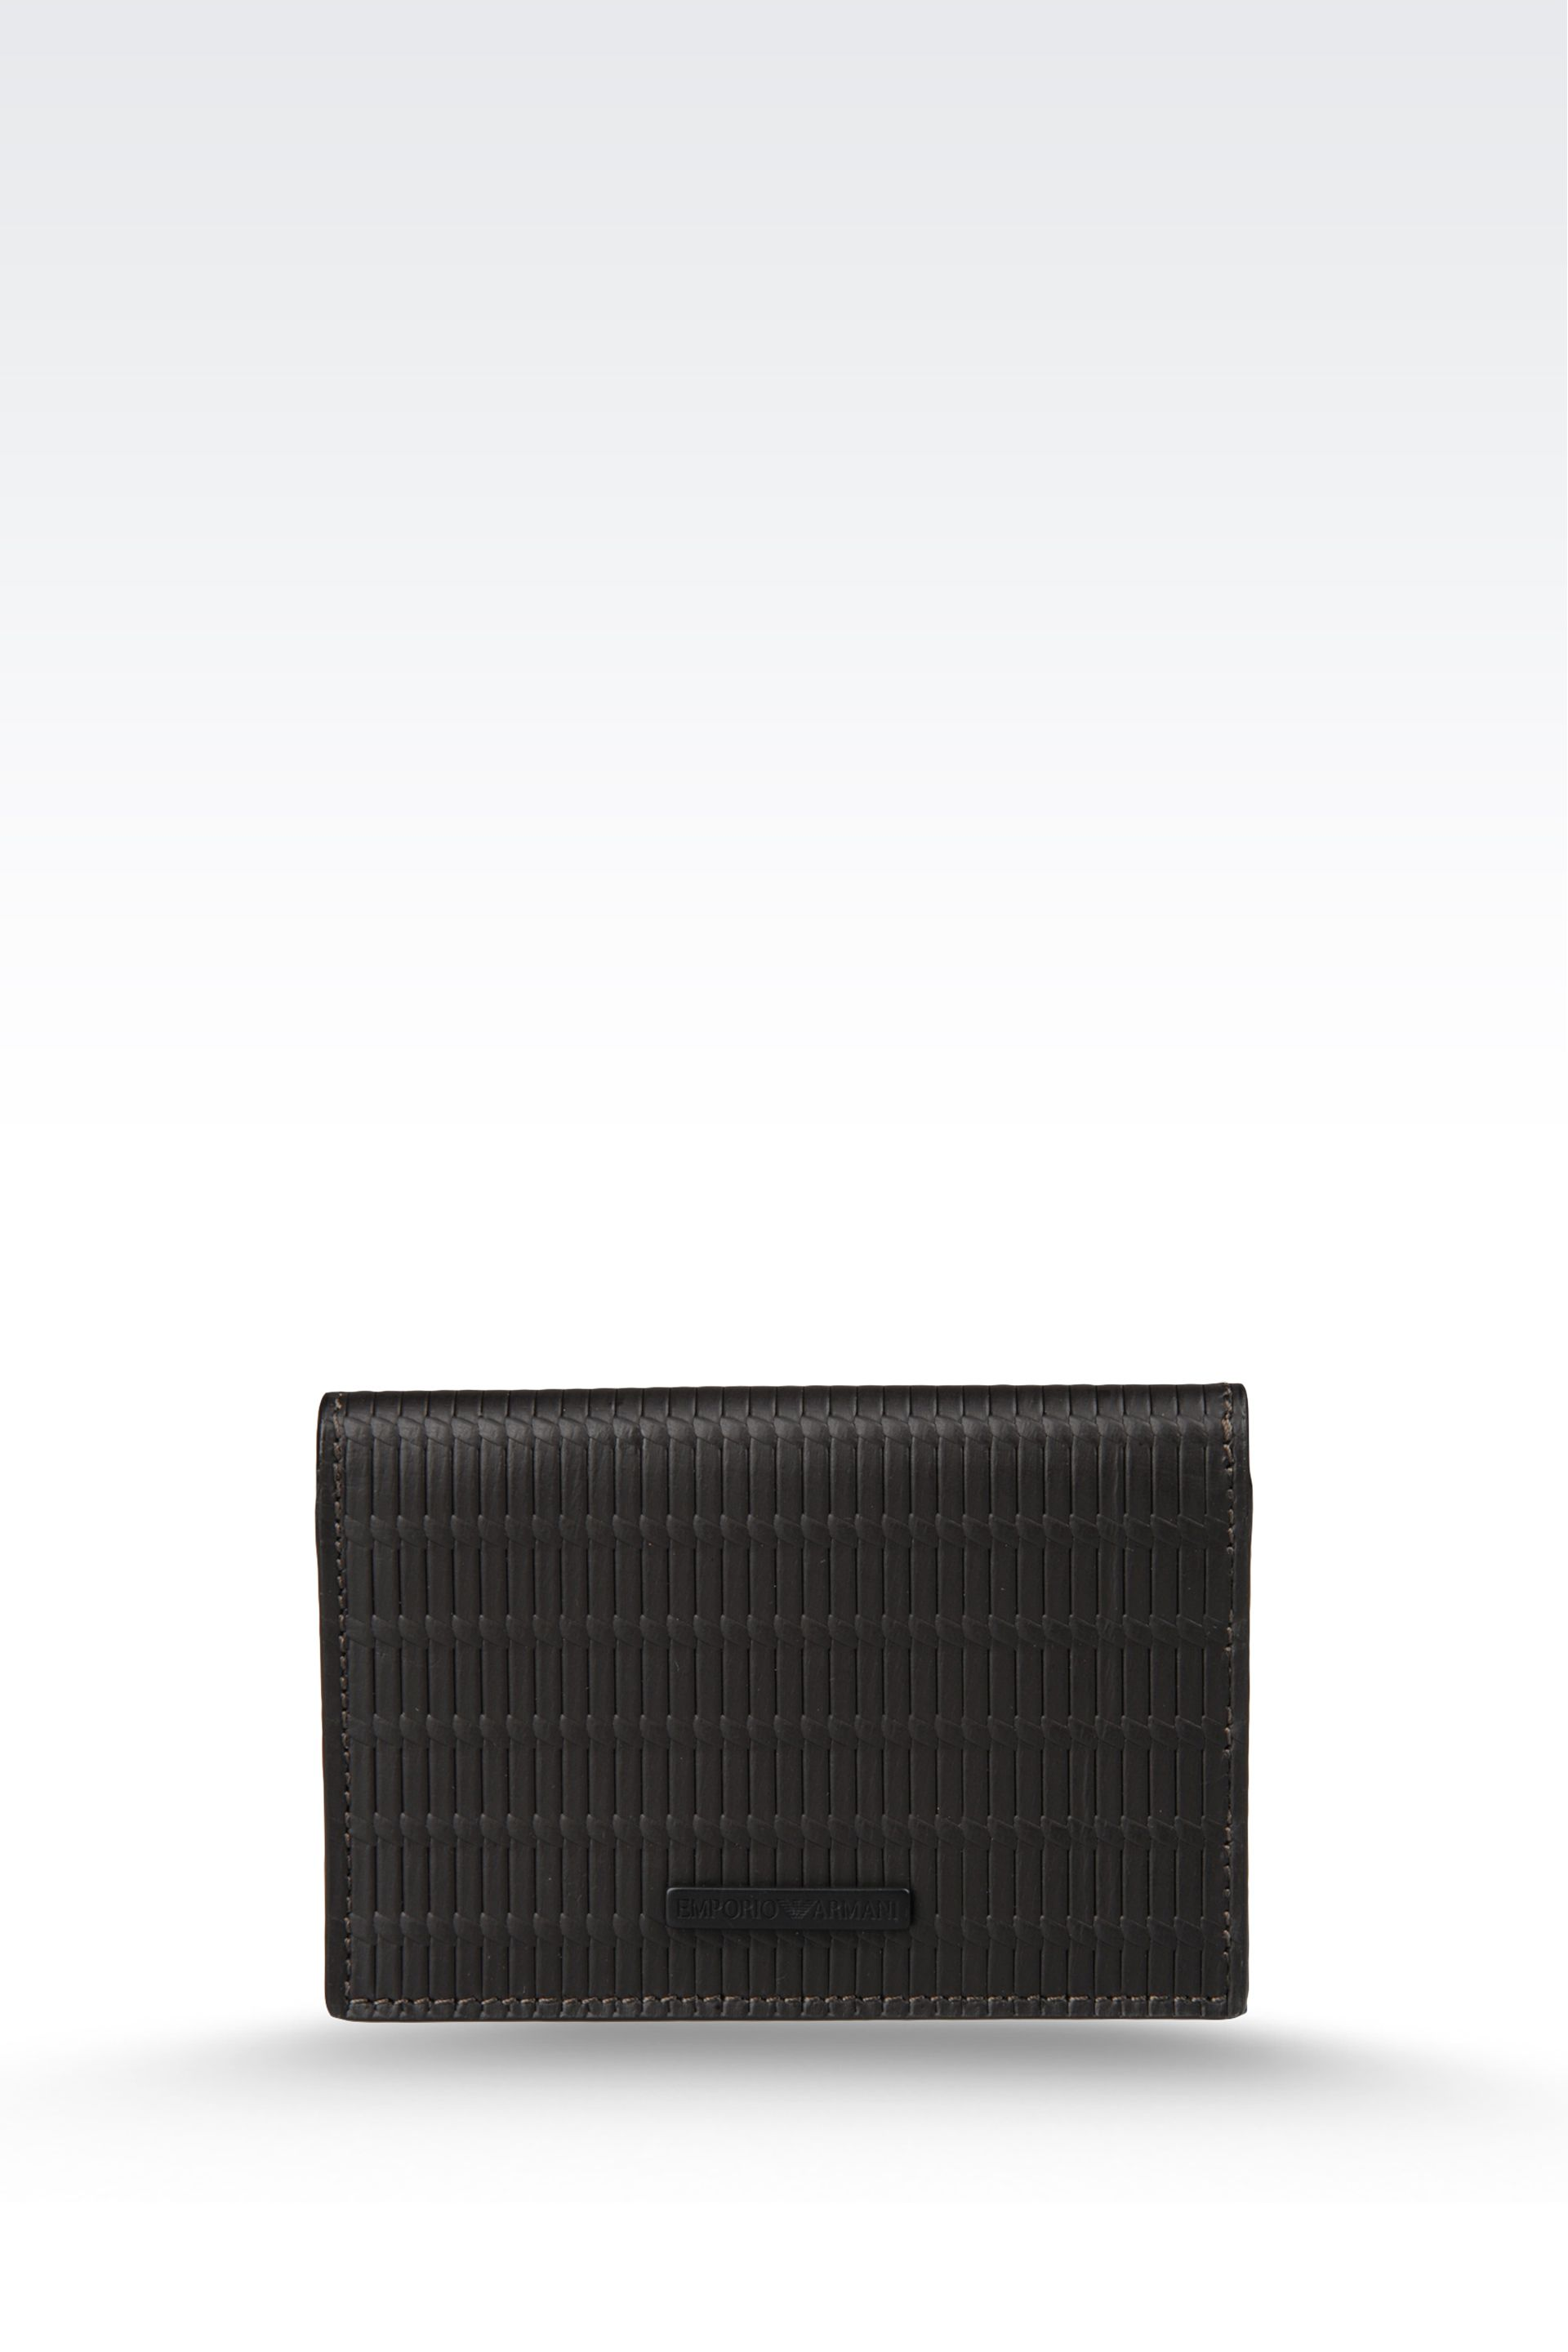 Lyst - Emporio Armani Business Card Holder in Woven Calf Skin in ...